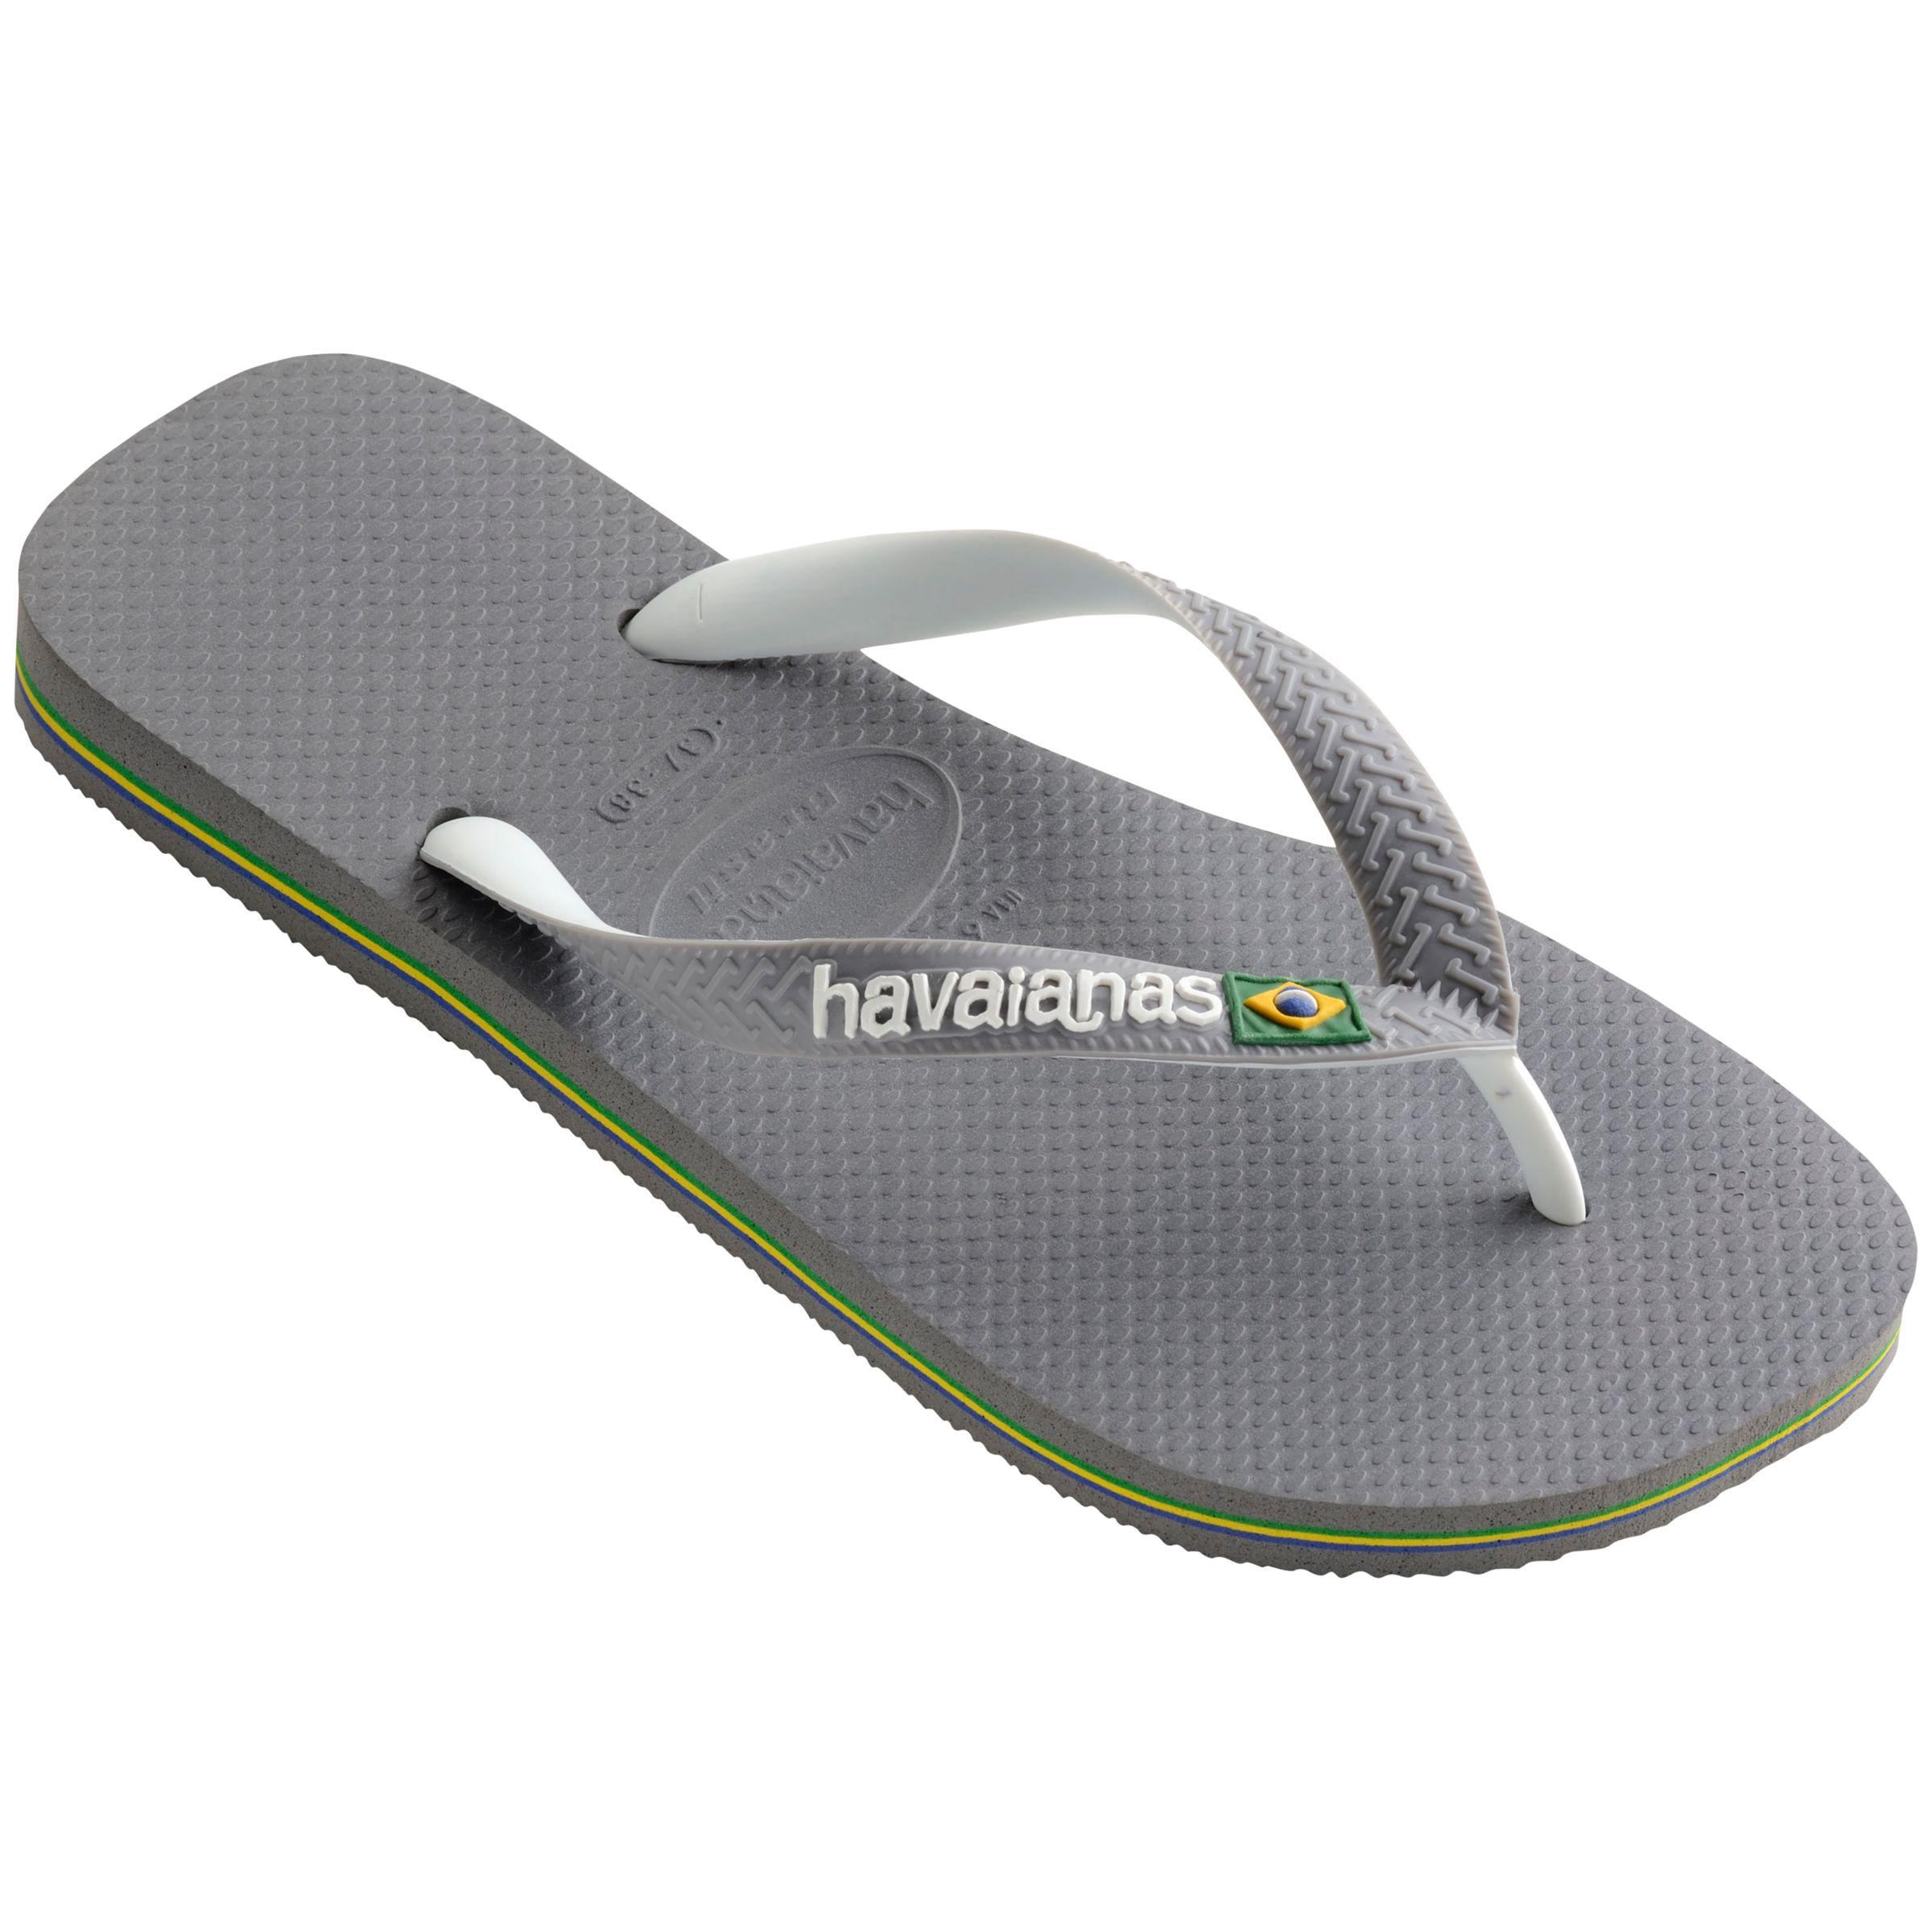 04d1036725a4 Havaianas Brasil Logo Flip Flops in Gray for Men - Lyst